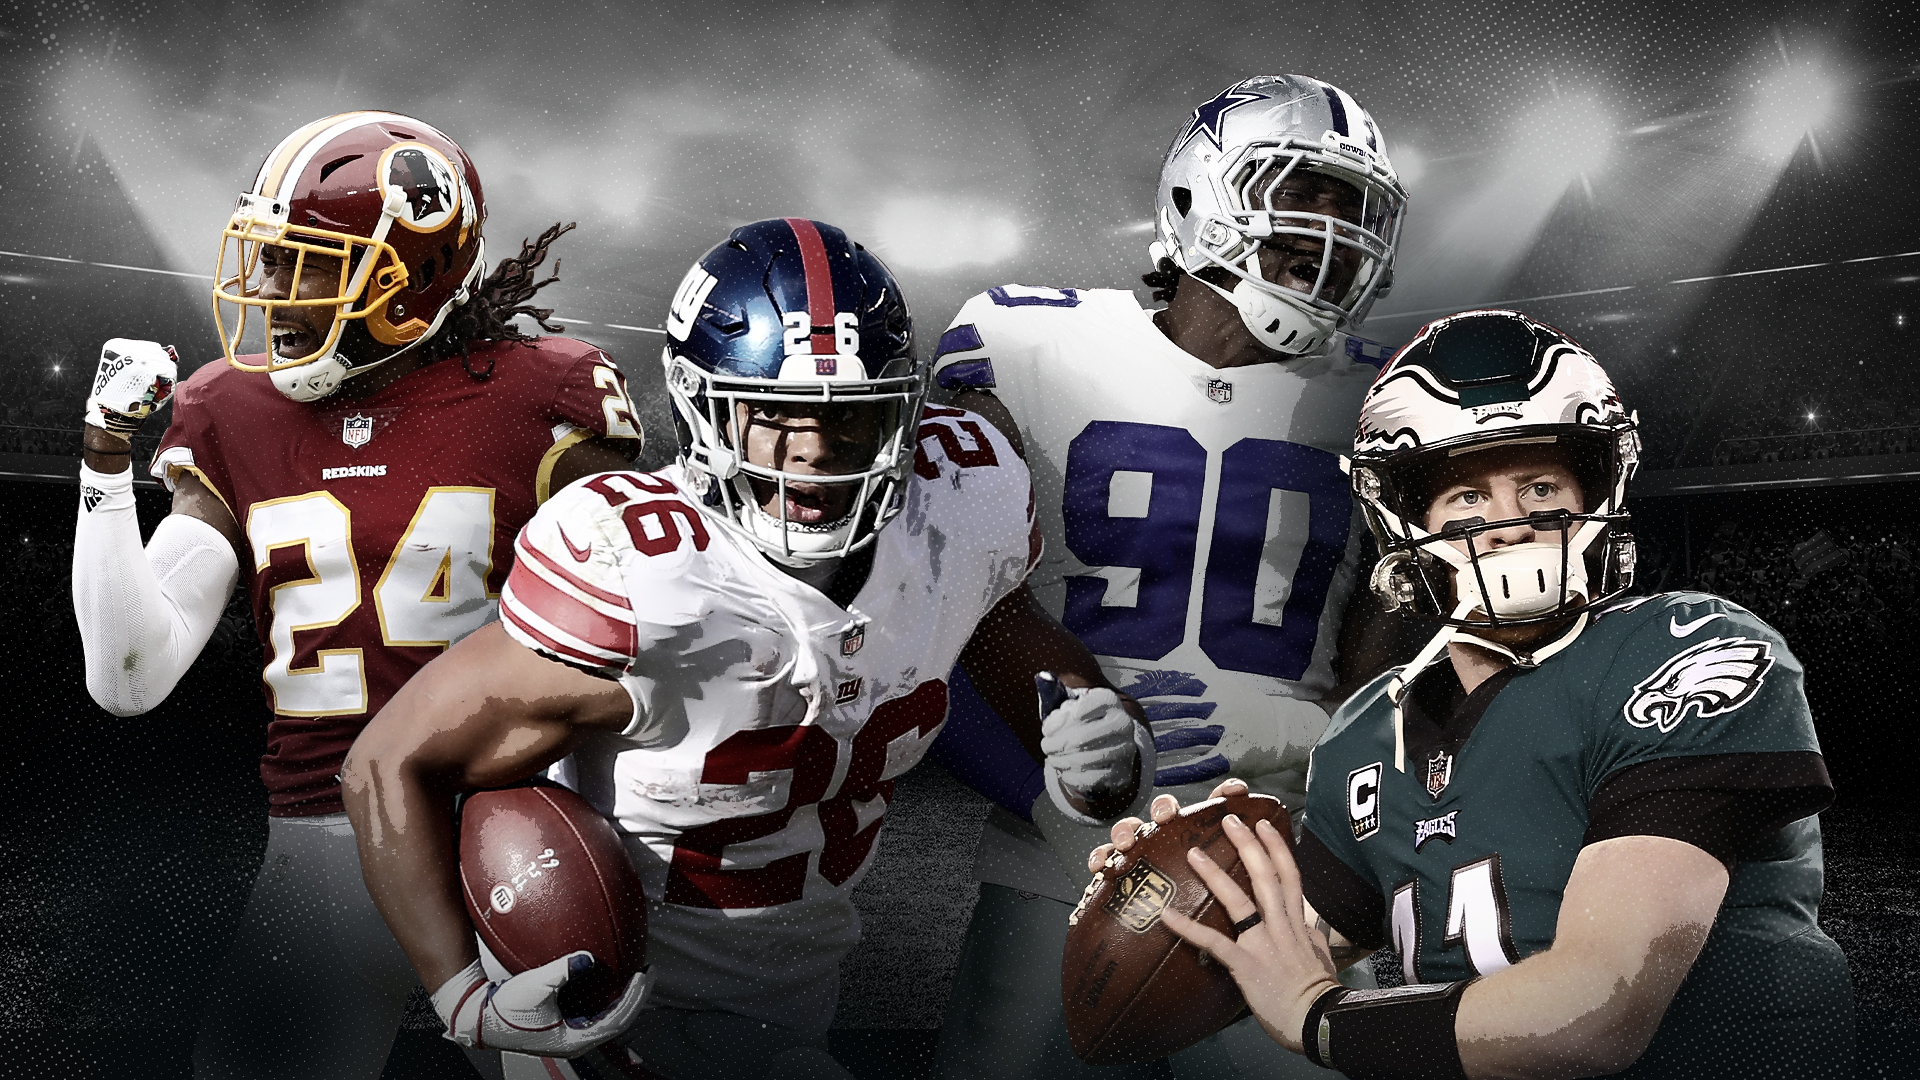 NFL predictions 2019: Cowboys clip Eagles, Giants dip with Redskins in NFC East